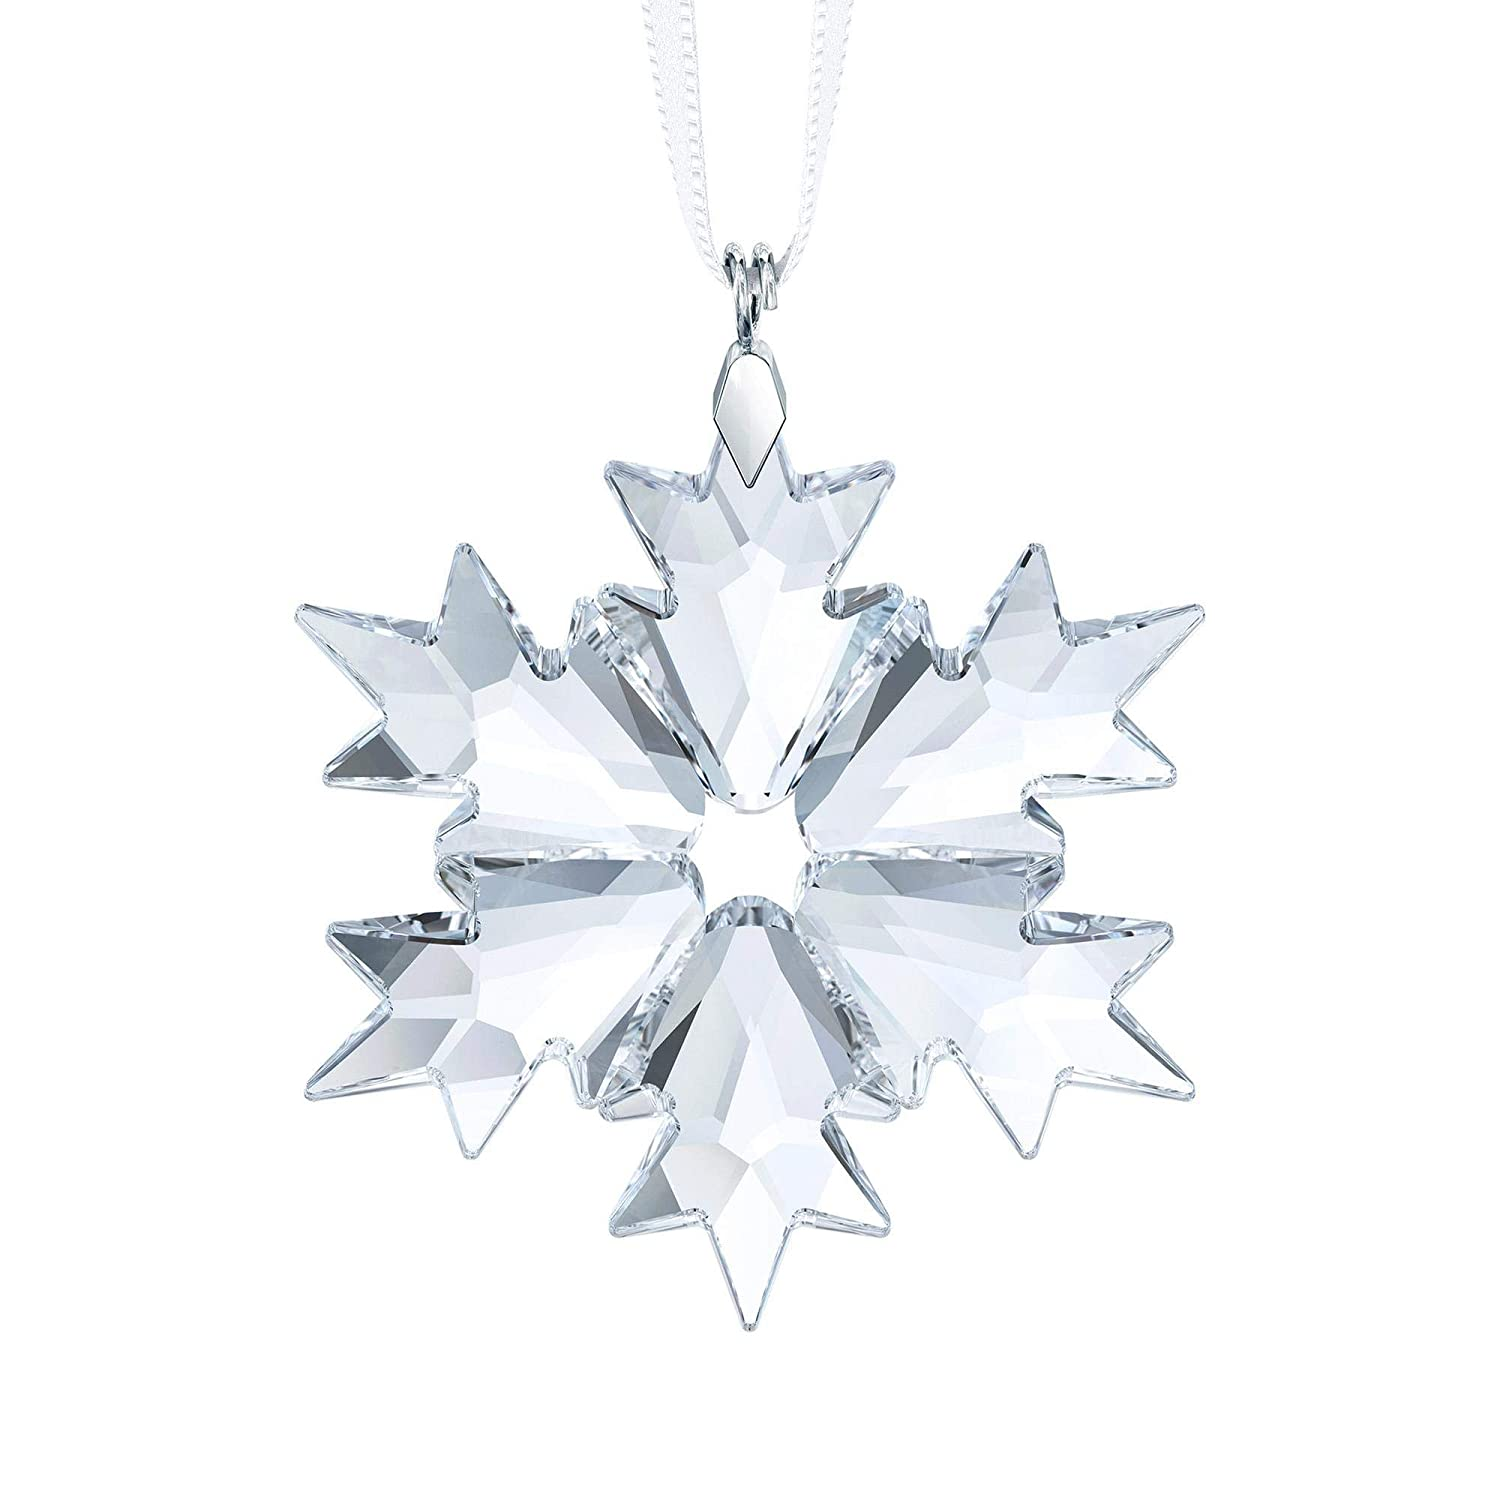 Swarovski Little Snowflake Ornament 5349843 Swarovski Crystal